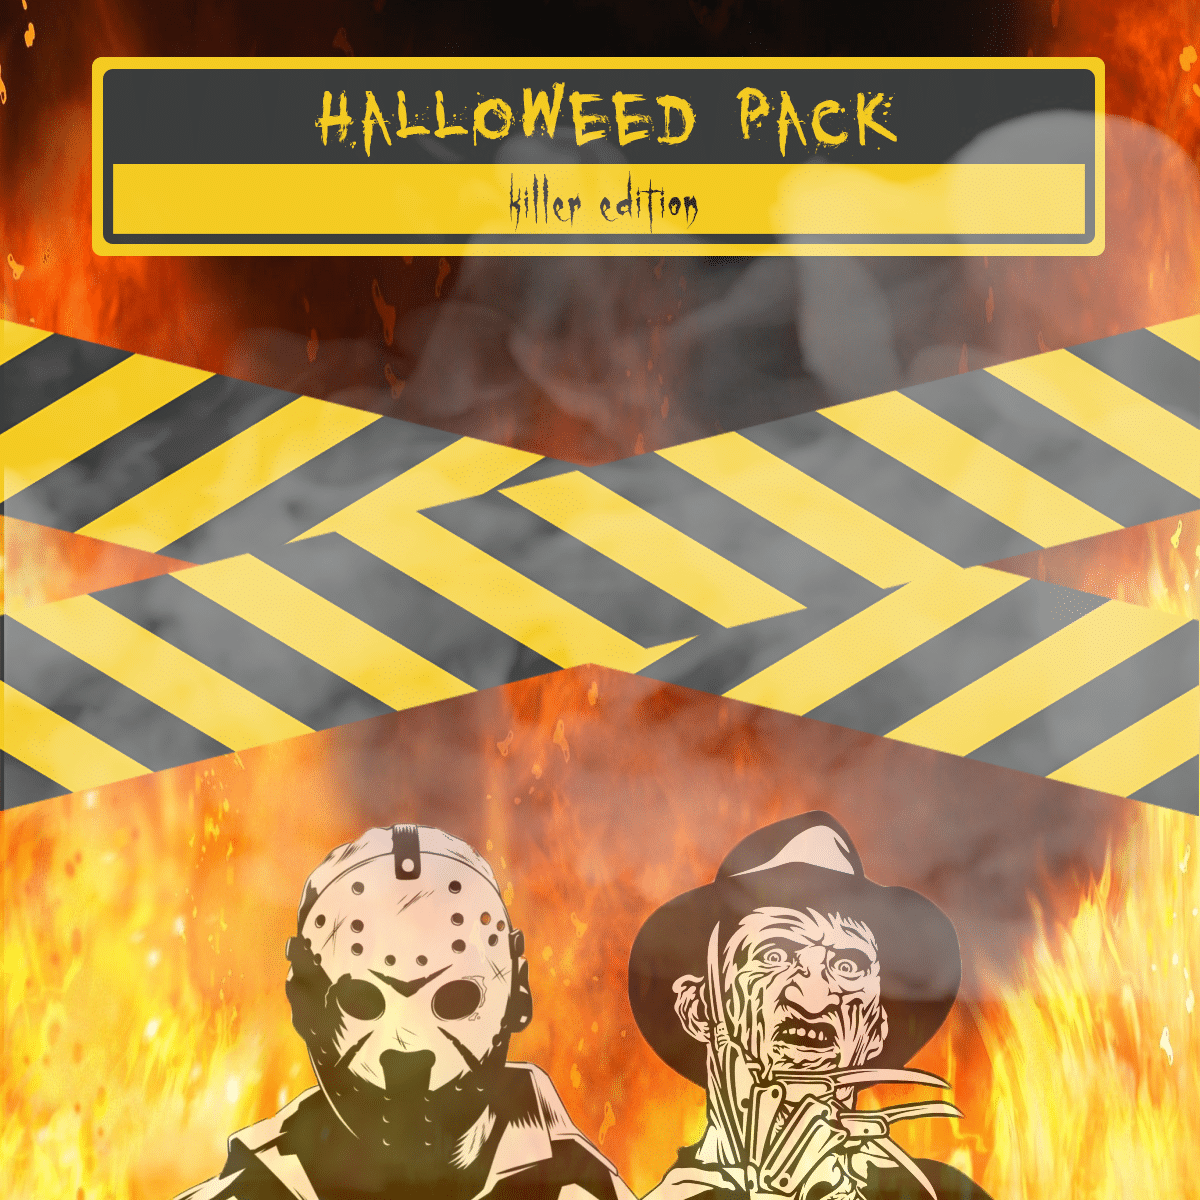 Halloweed Pack: Killer Edition by Green Society - Image © 2018 Green Society. All Rights Reserved.